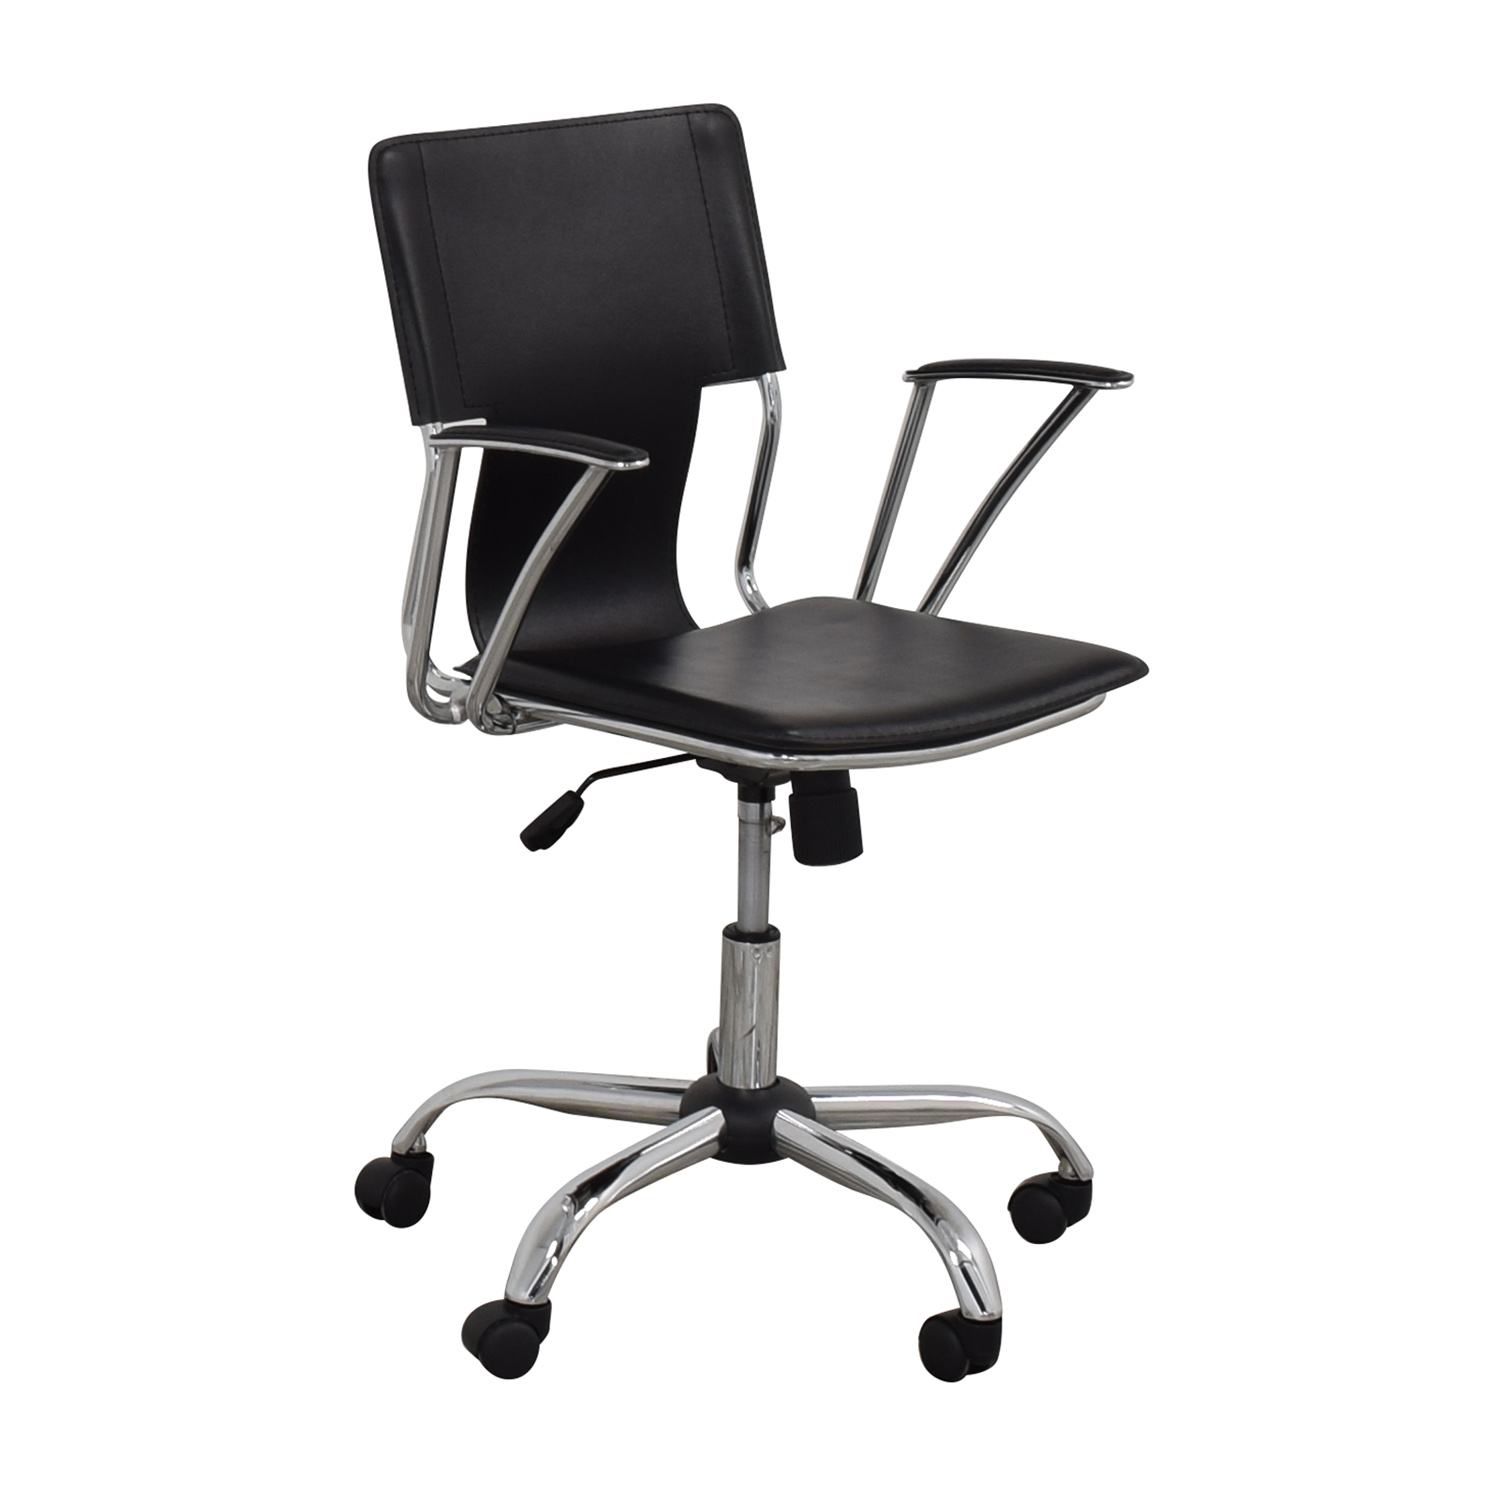 40 Off Bed Bath Beyond Bed Bath Beyond Desk Chair Chairs